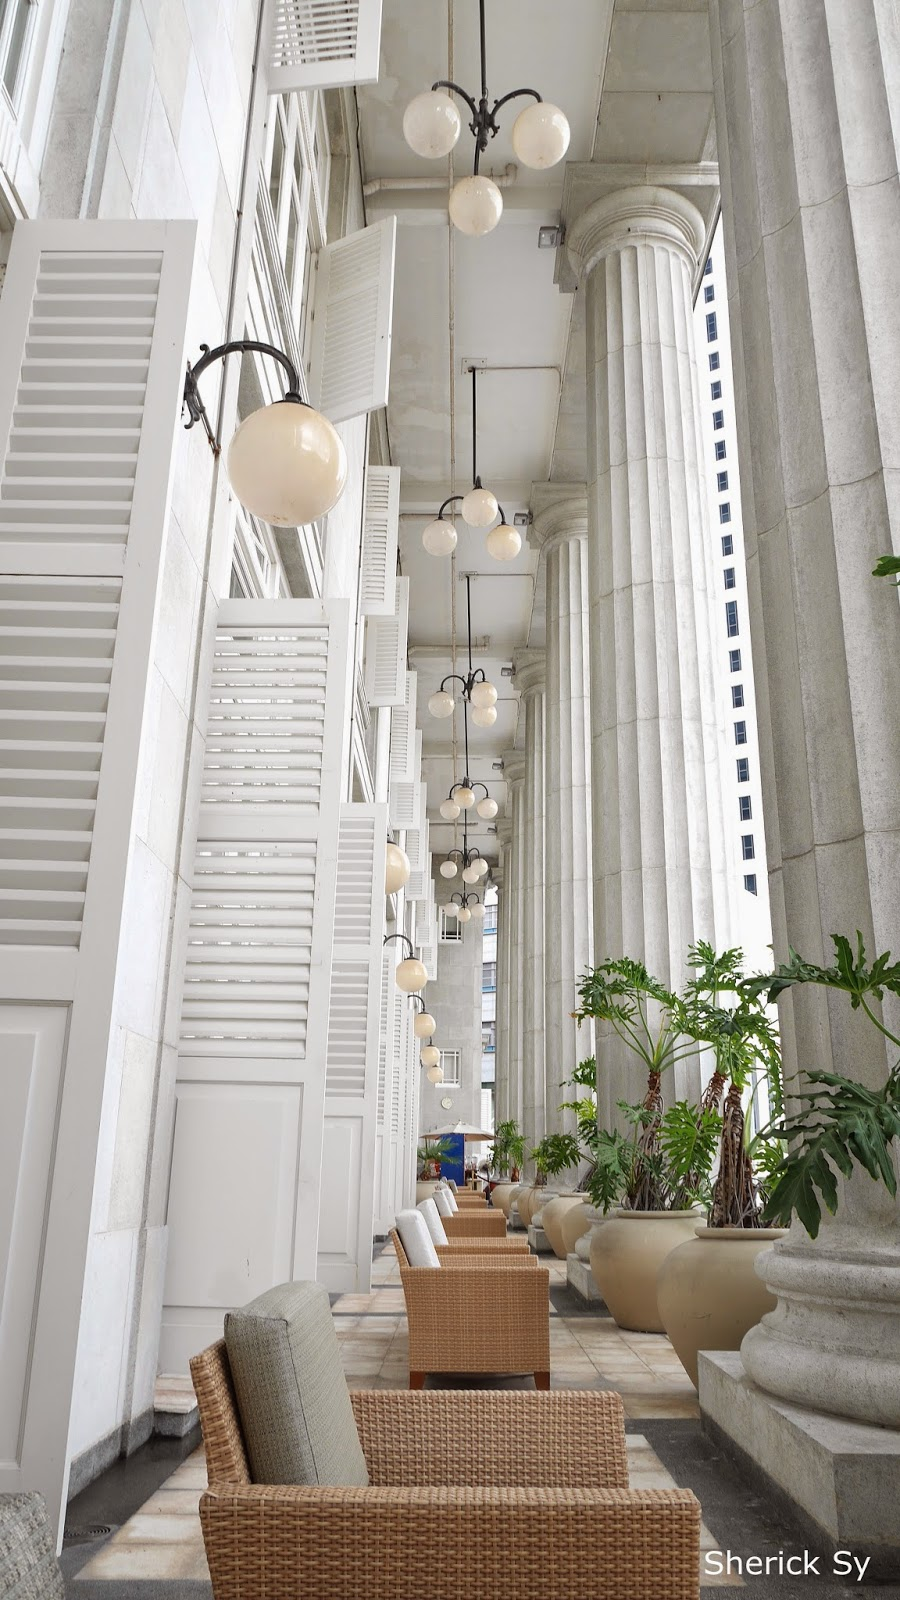 Balcony at Fullerton Hotel, Singapore